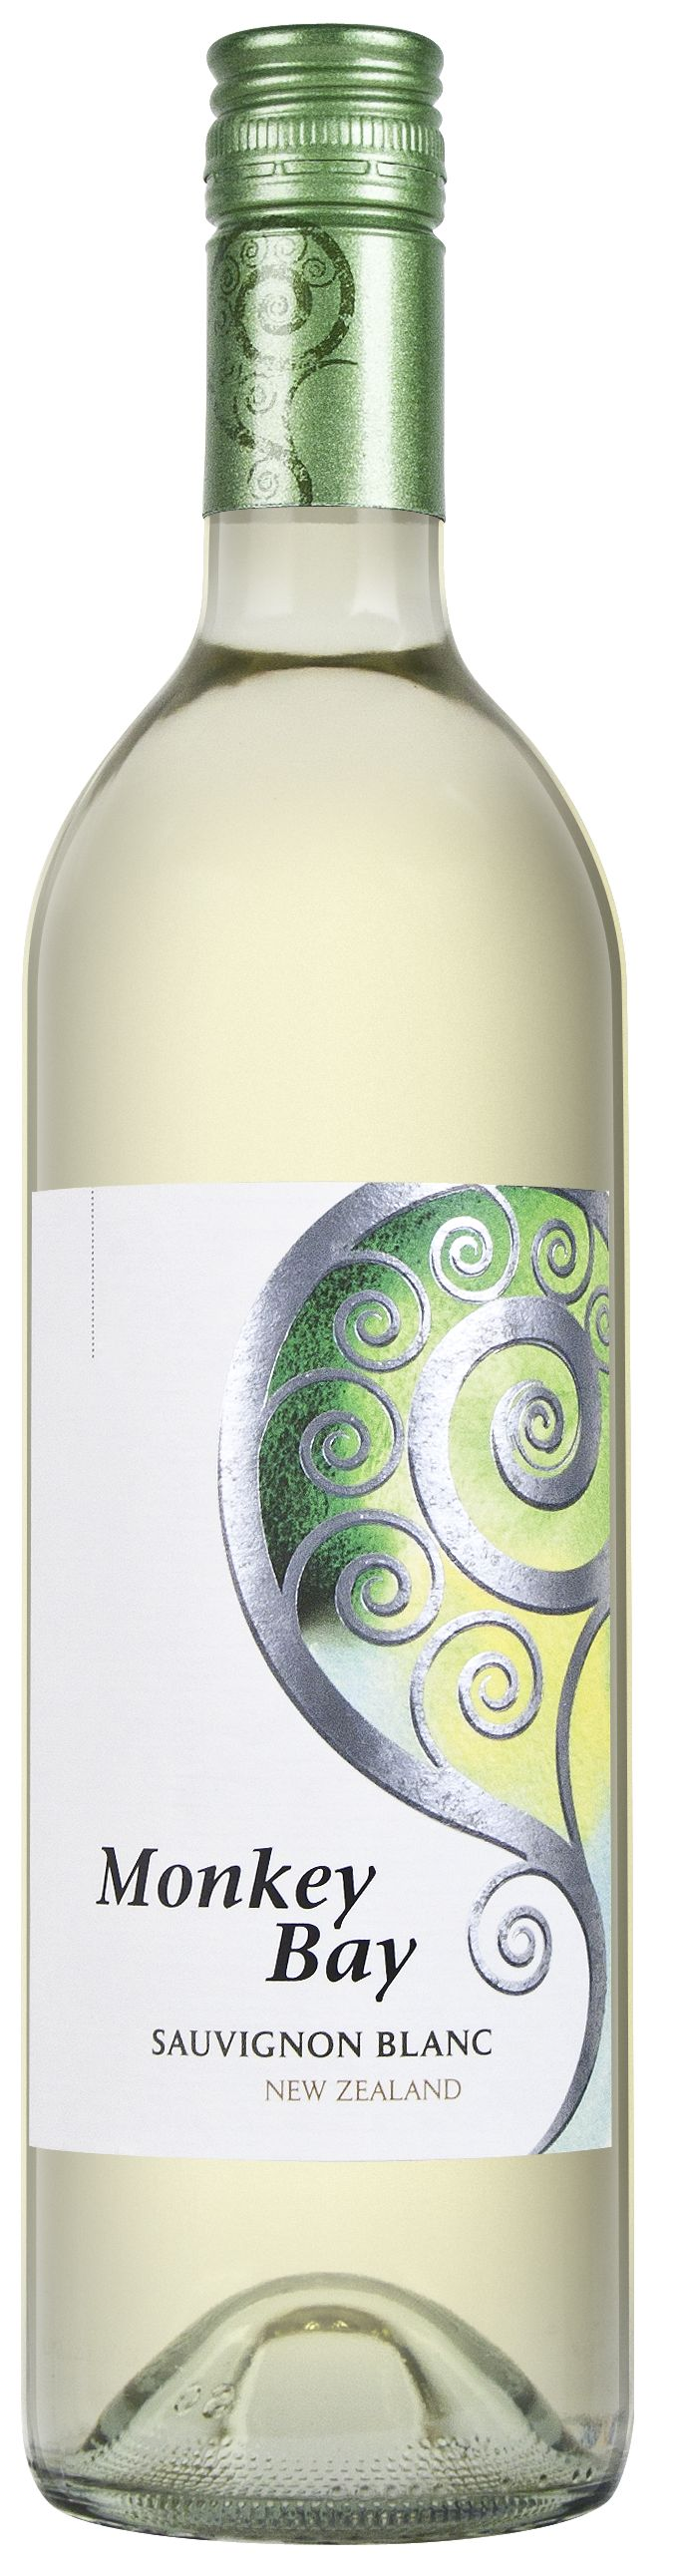 2013 Monkey Bay Sauvignon Blanc Marlborough is a fresh, lively approachable wine overflowing with grapefruit, lemon and passion fruit and infused with a delicate, herbaceous character.